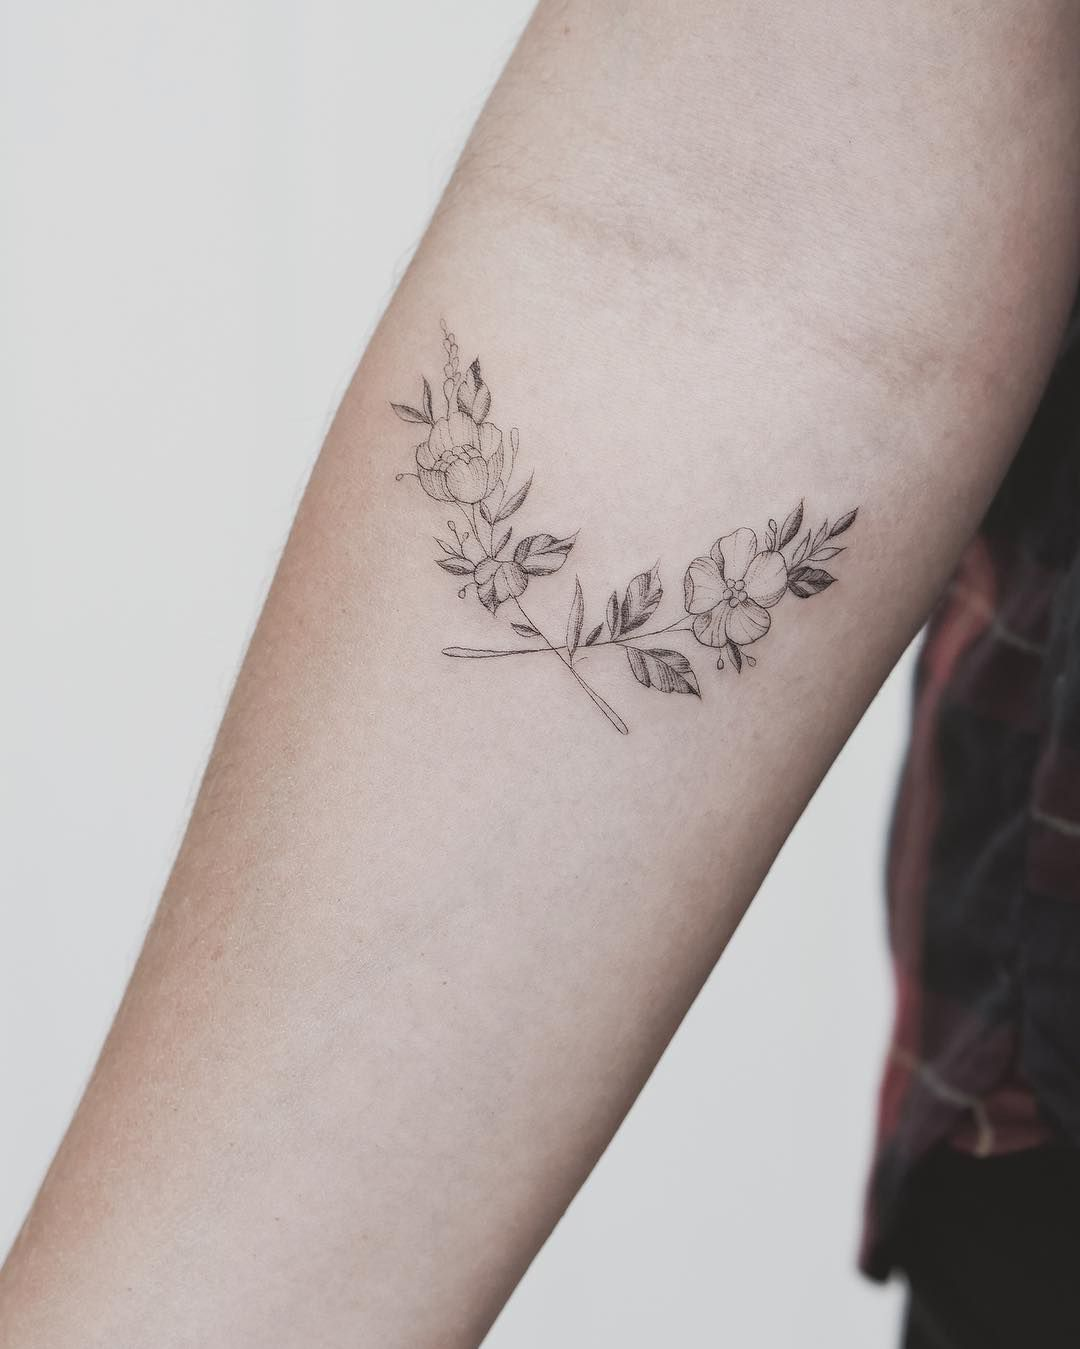 Single Needle Tattoos With Olive Branch Google Search Single Needle Tattoo Cool Small Tattoos Feminine Arm Tattoos